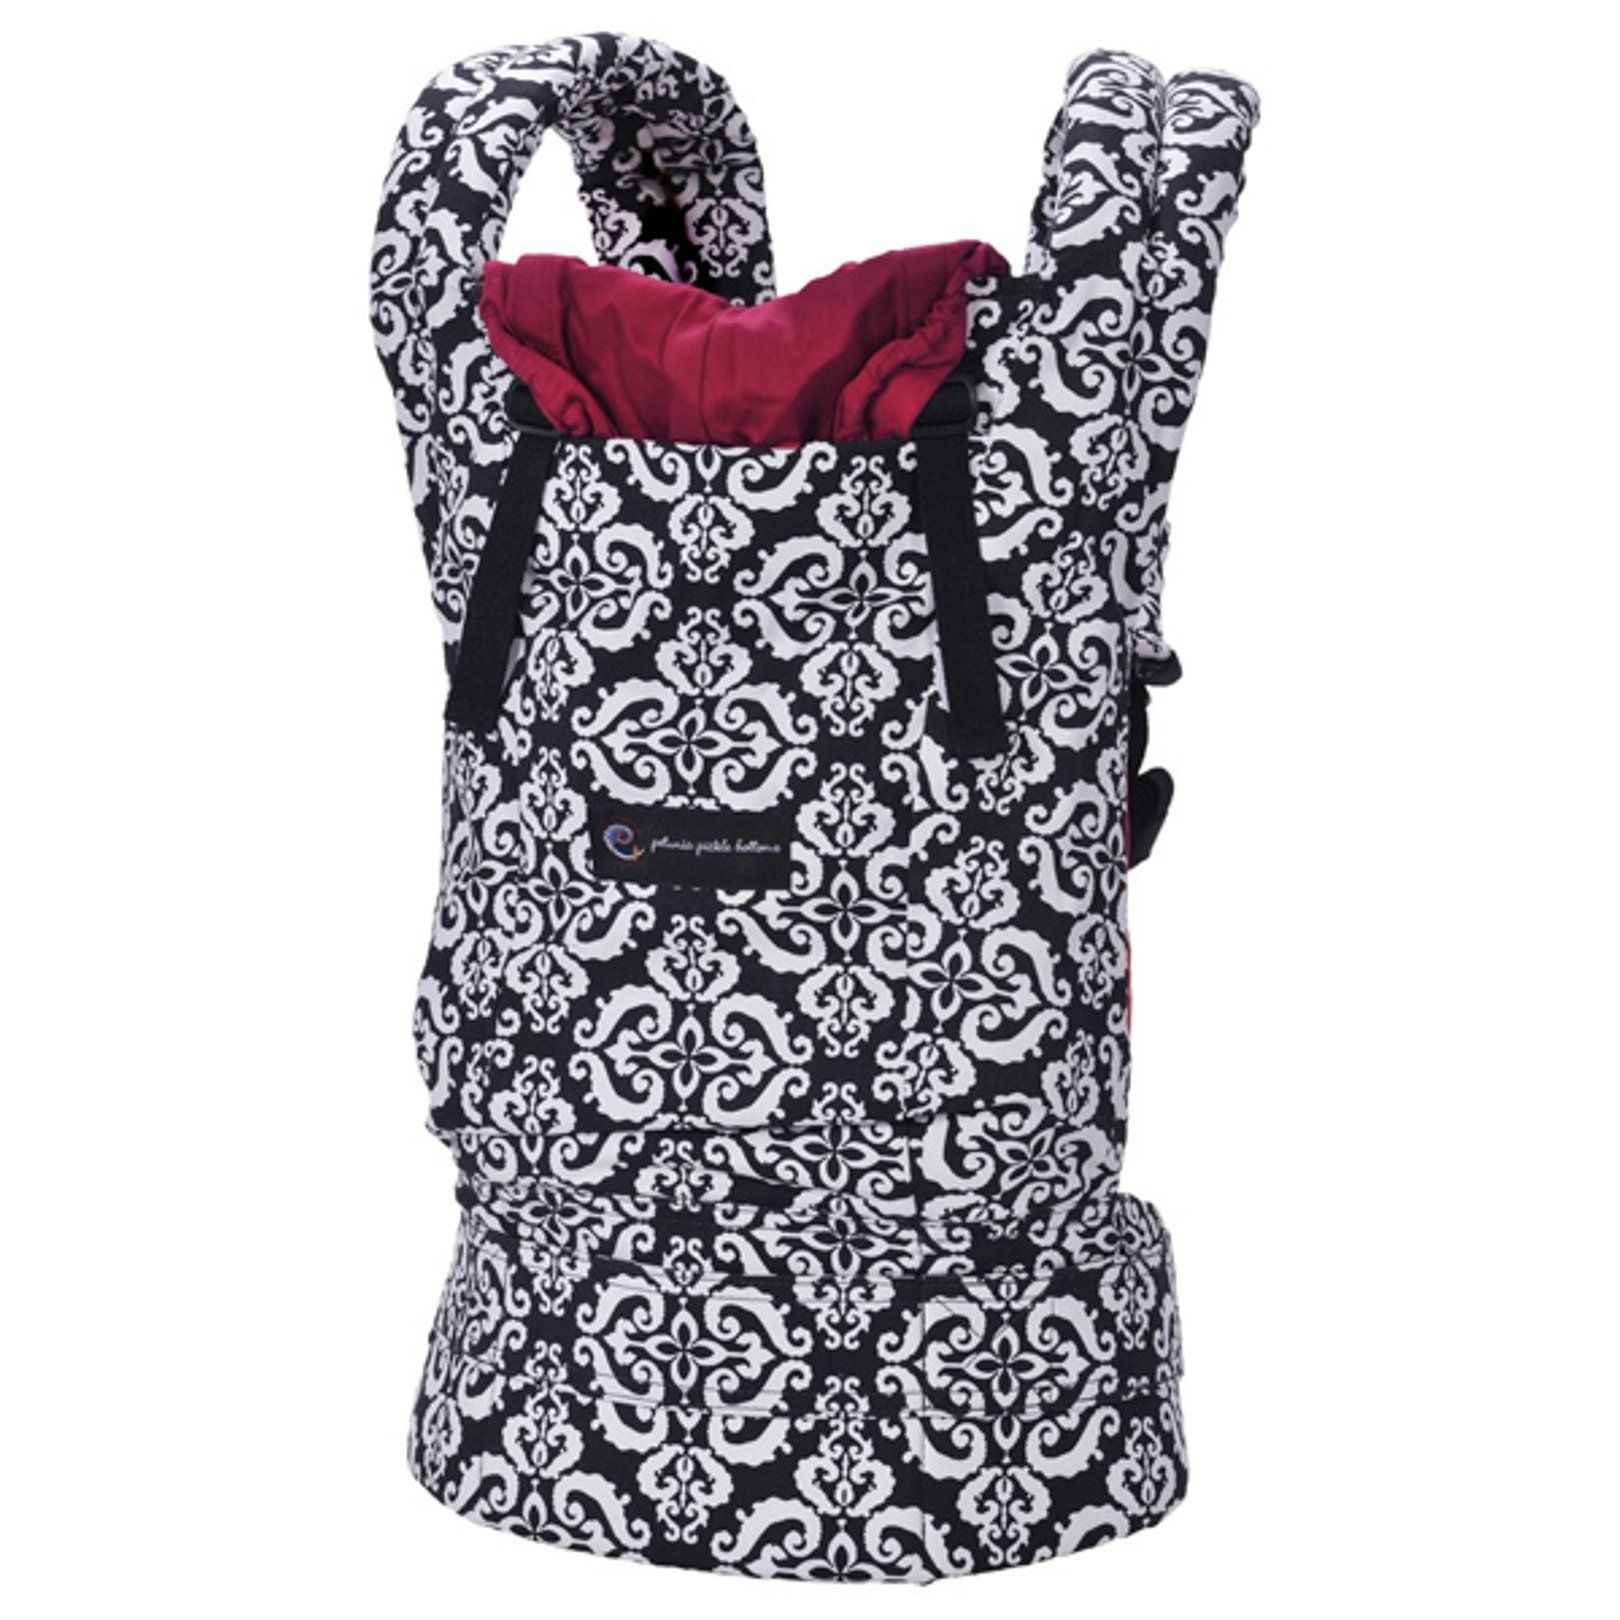 ergobaby carrier petunia pickle bottom